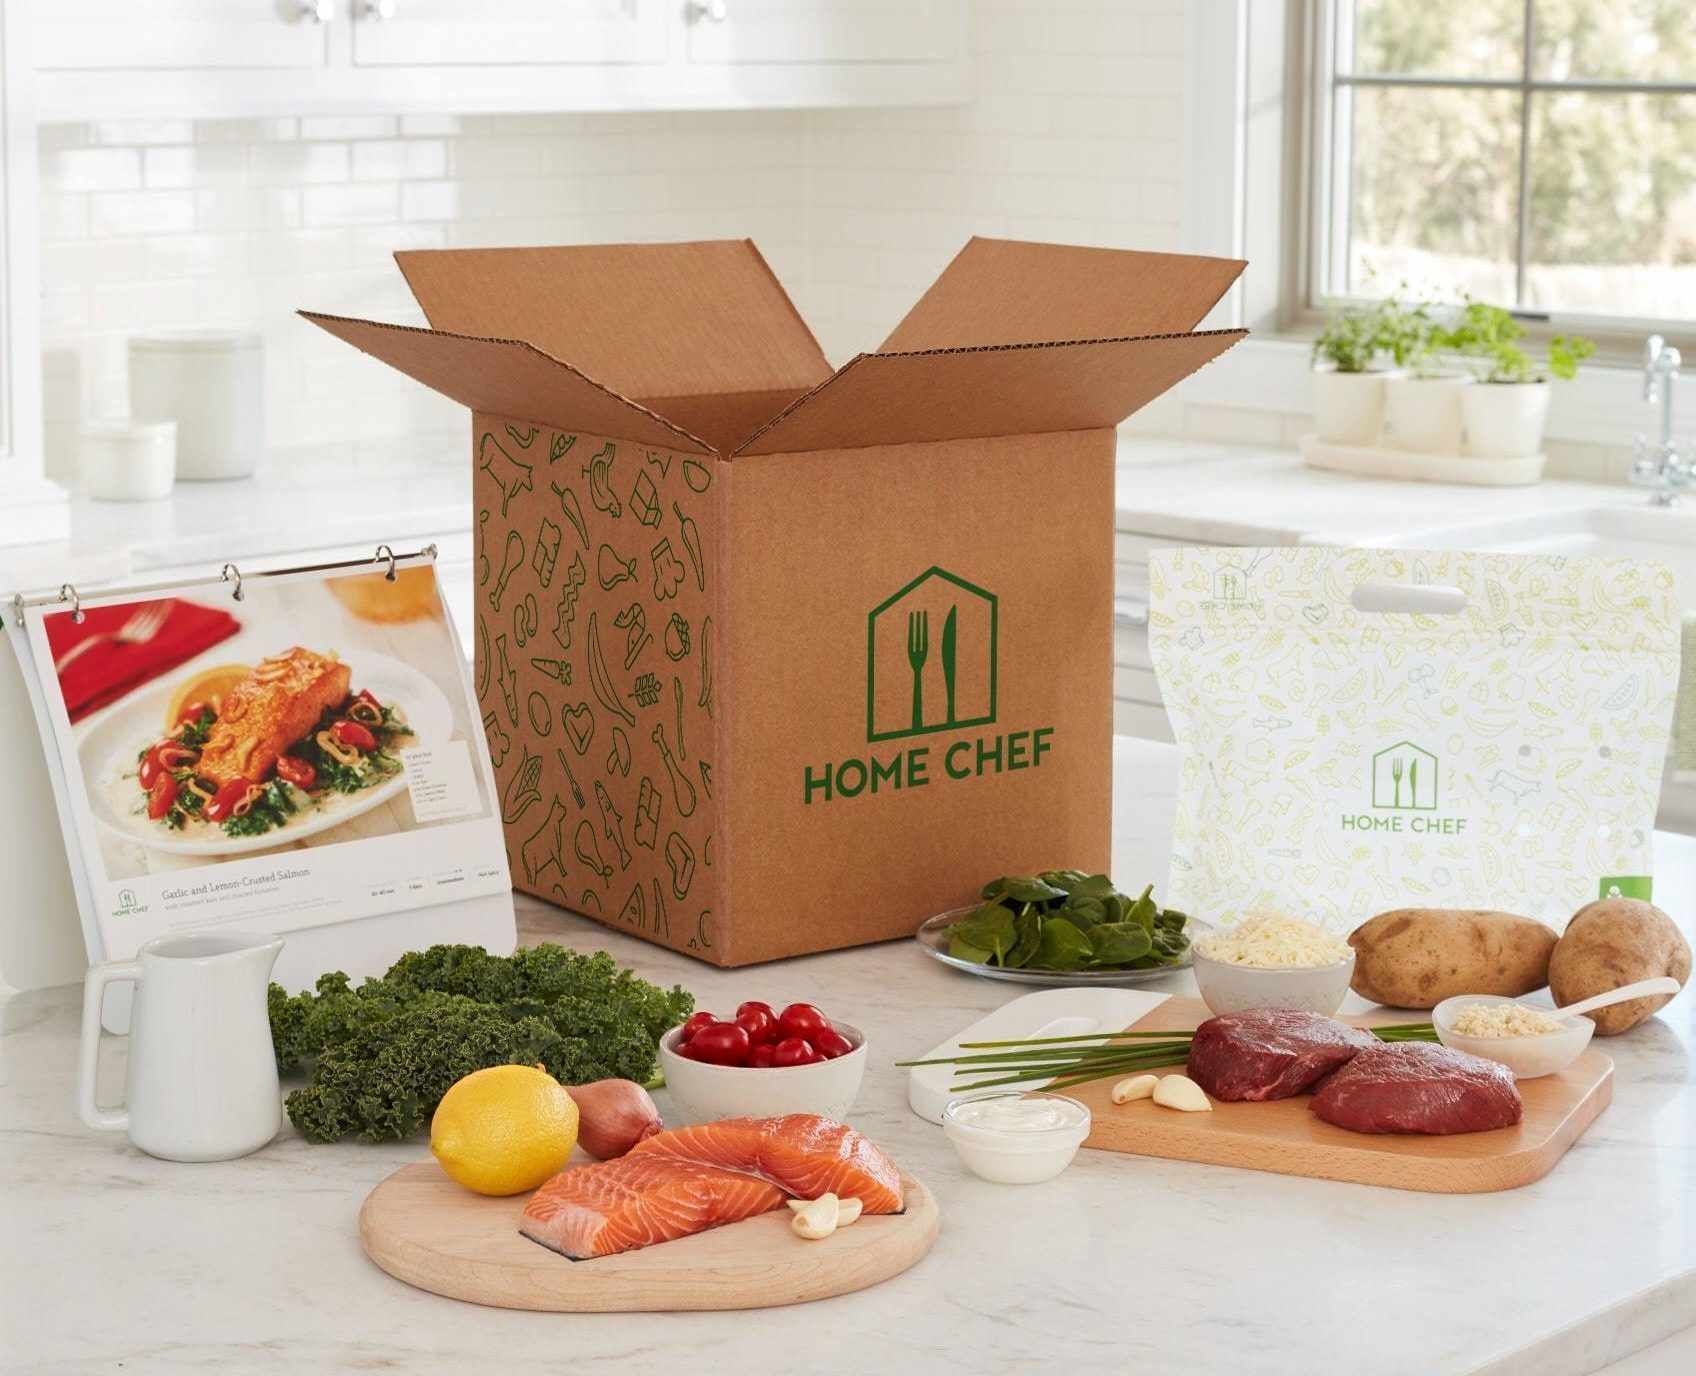 home chef box with ingredients on table